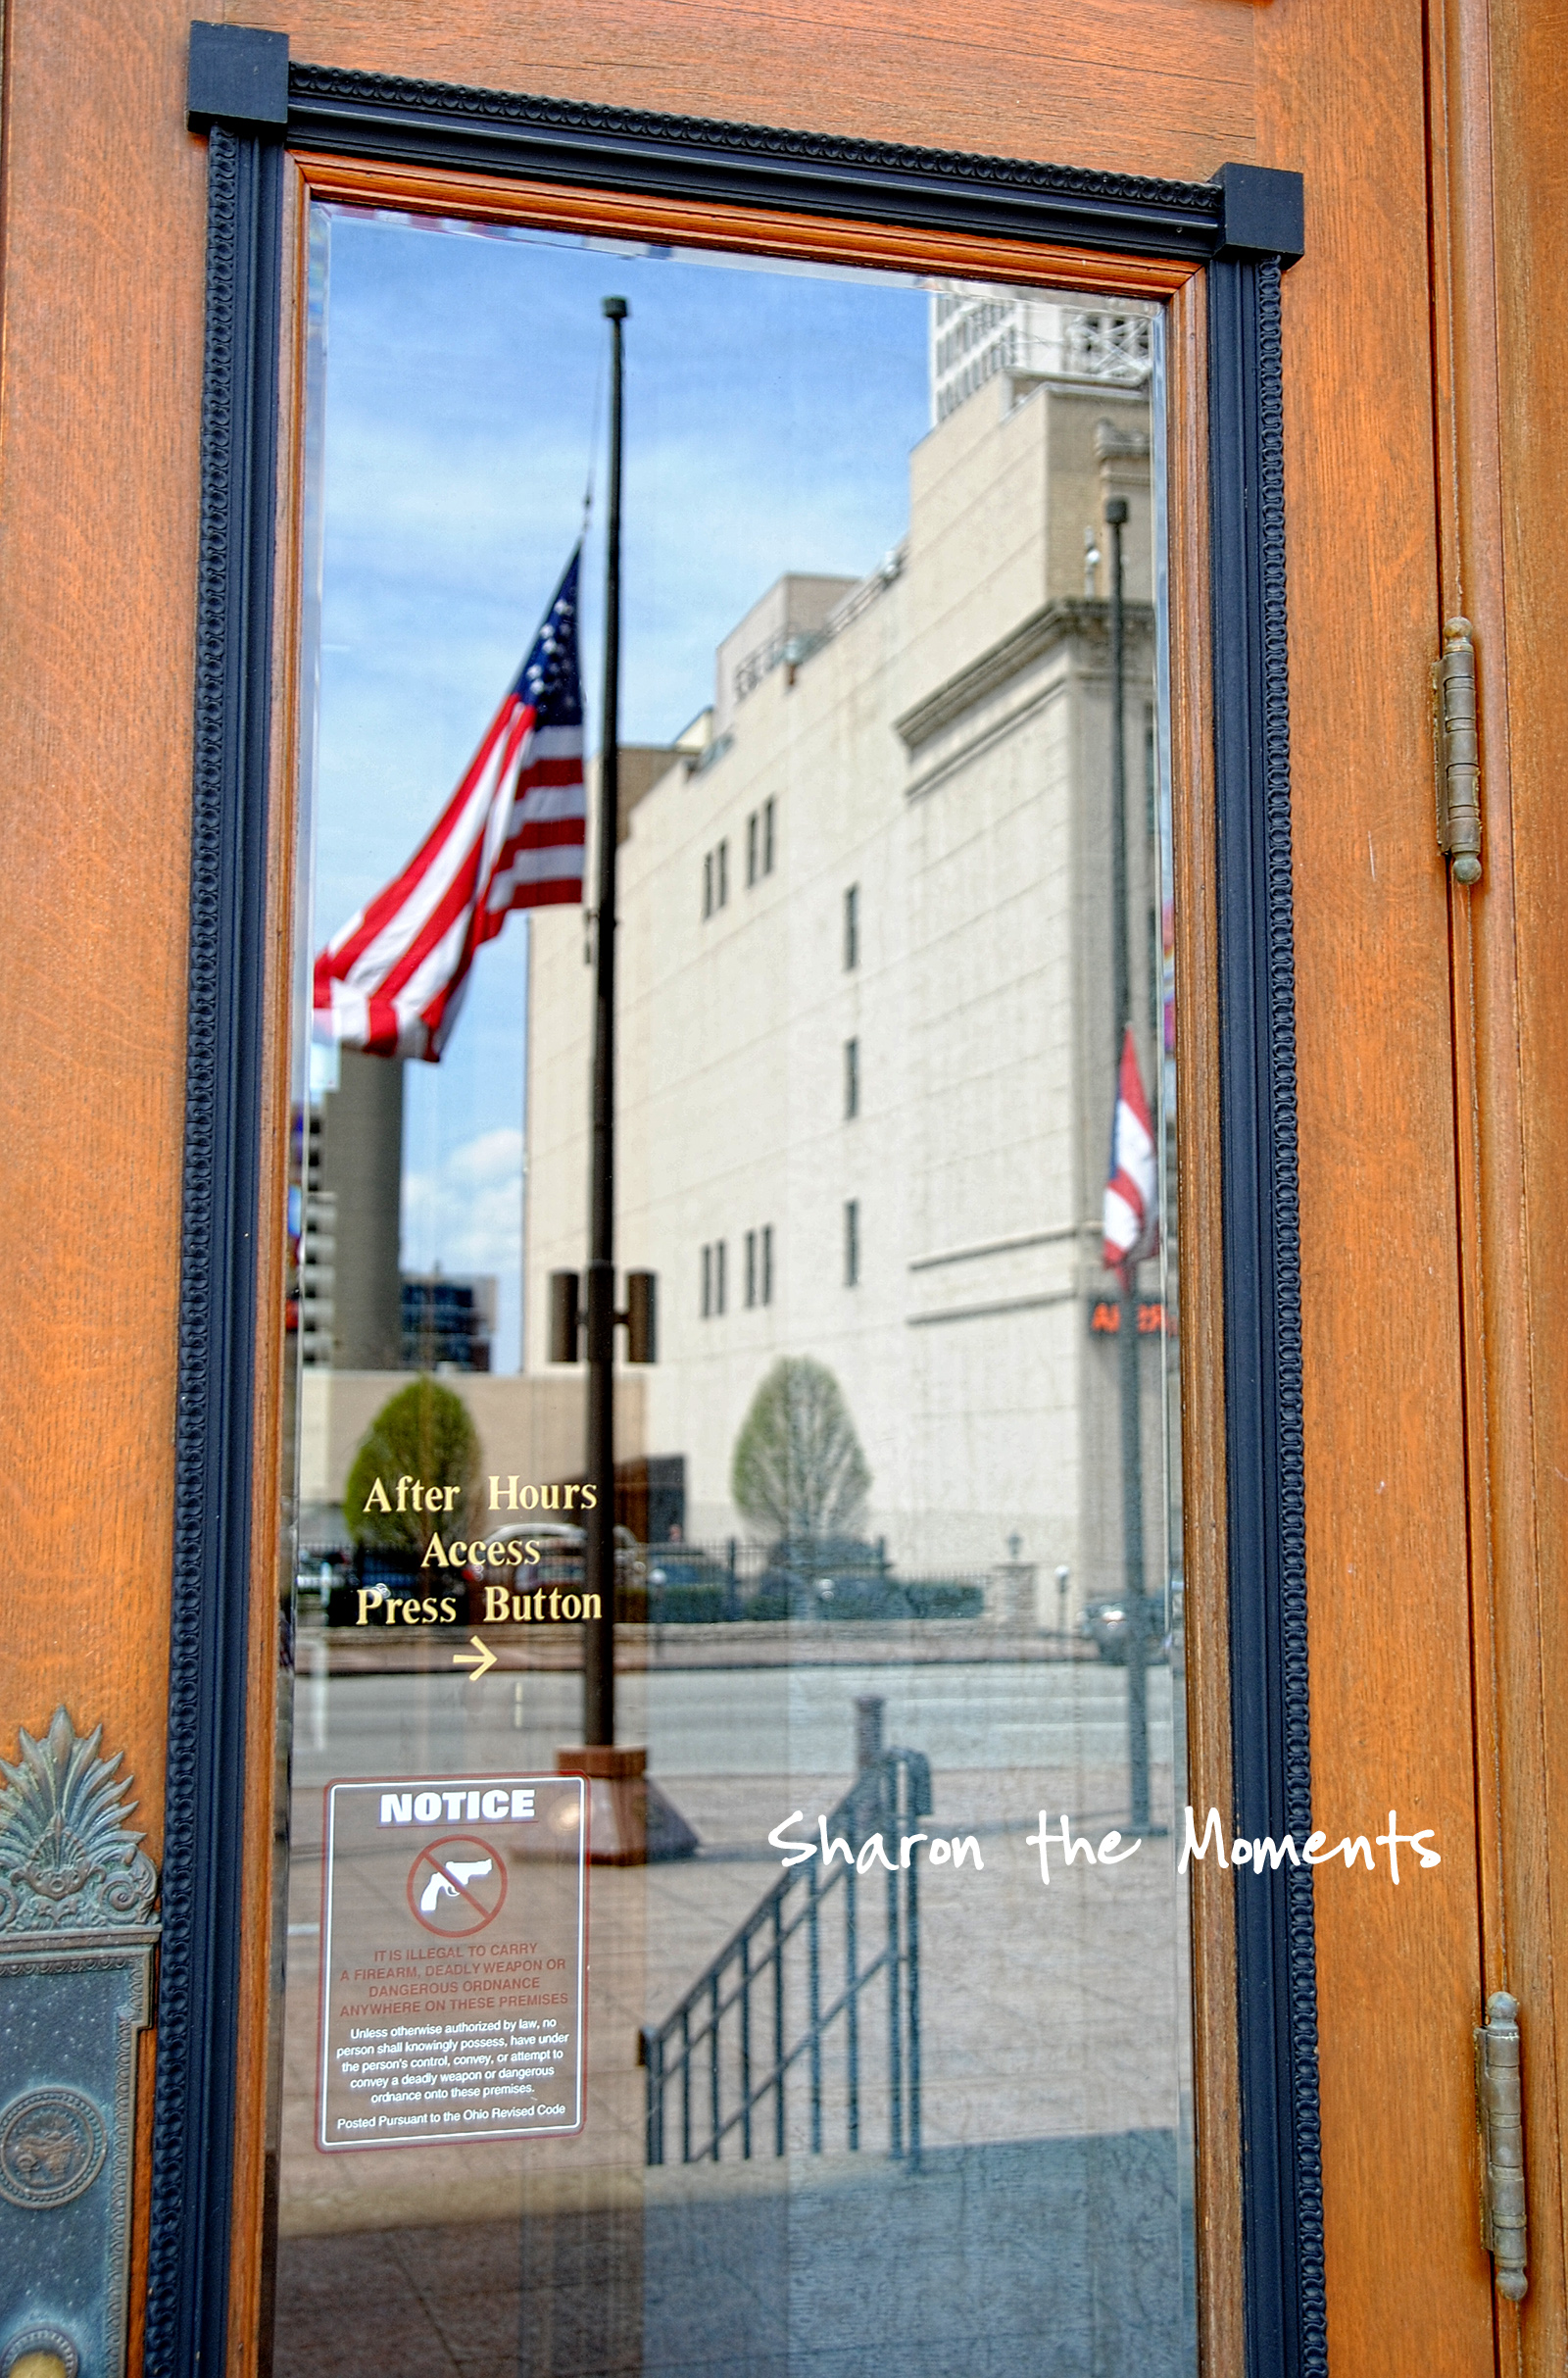 Monday Monday Spring Downtown Columbus Statehouse|Sharon the Moments blog